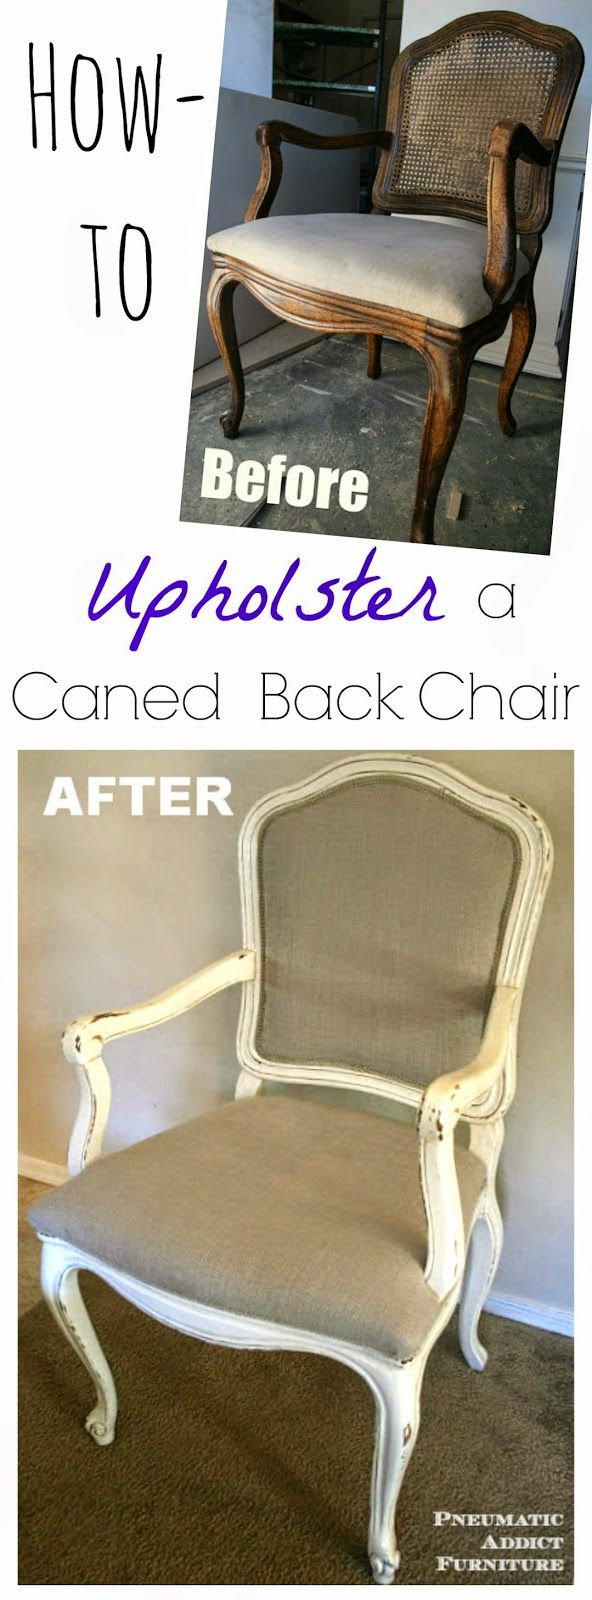 best 25 upholstered dining room chairs ideas on pinterest pneumatic addict how to upholster a caned back chair tutorial